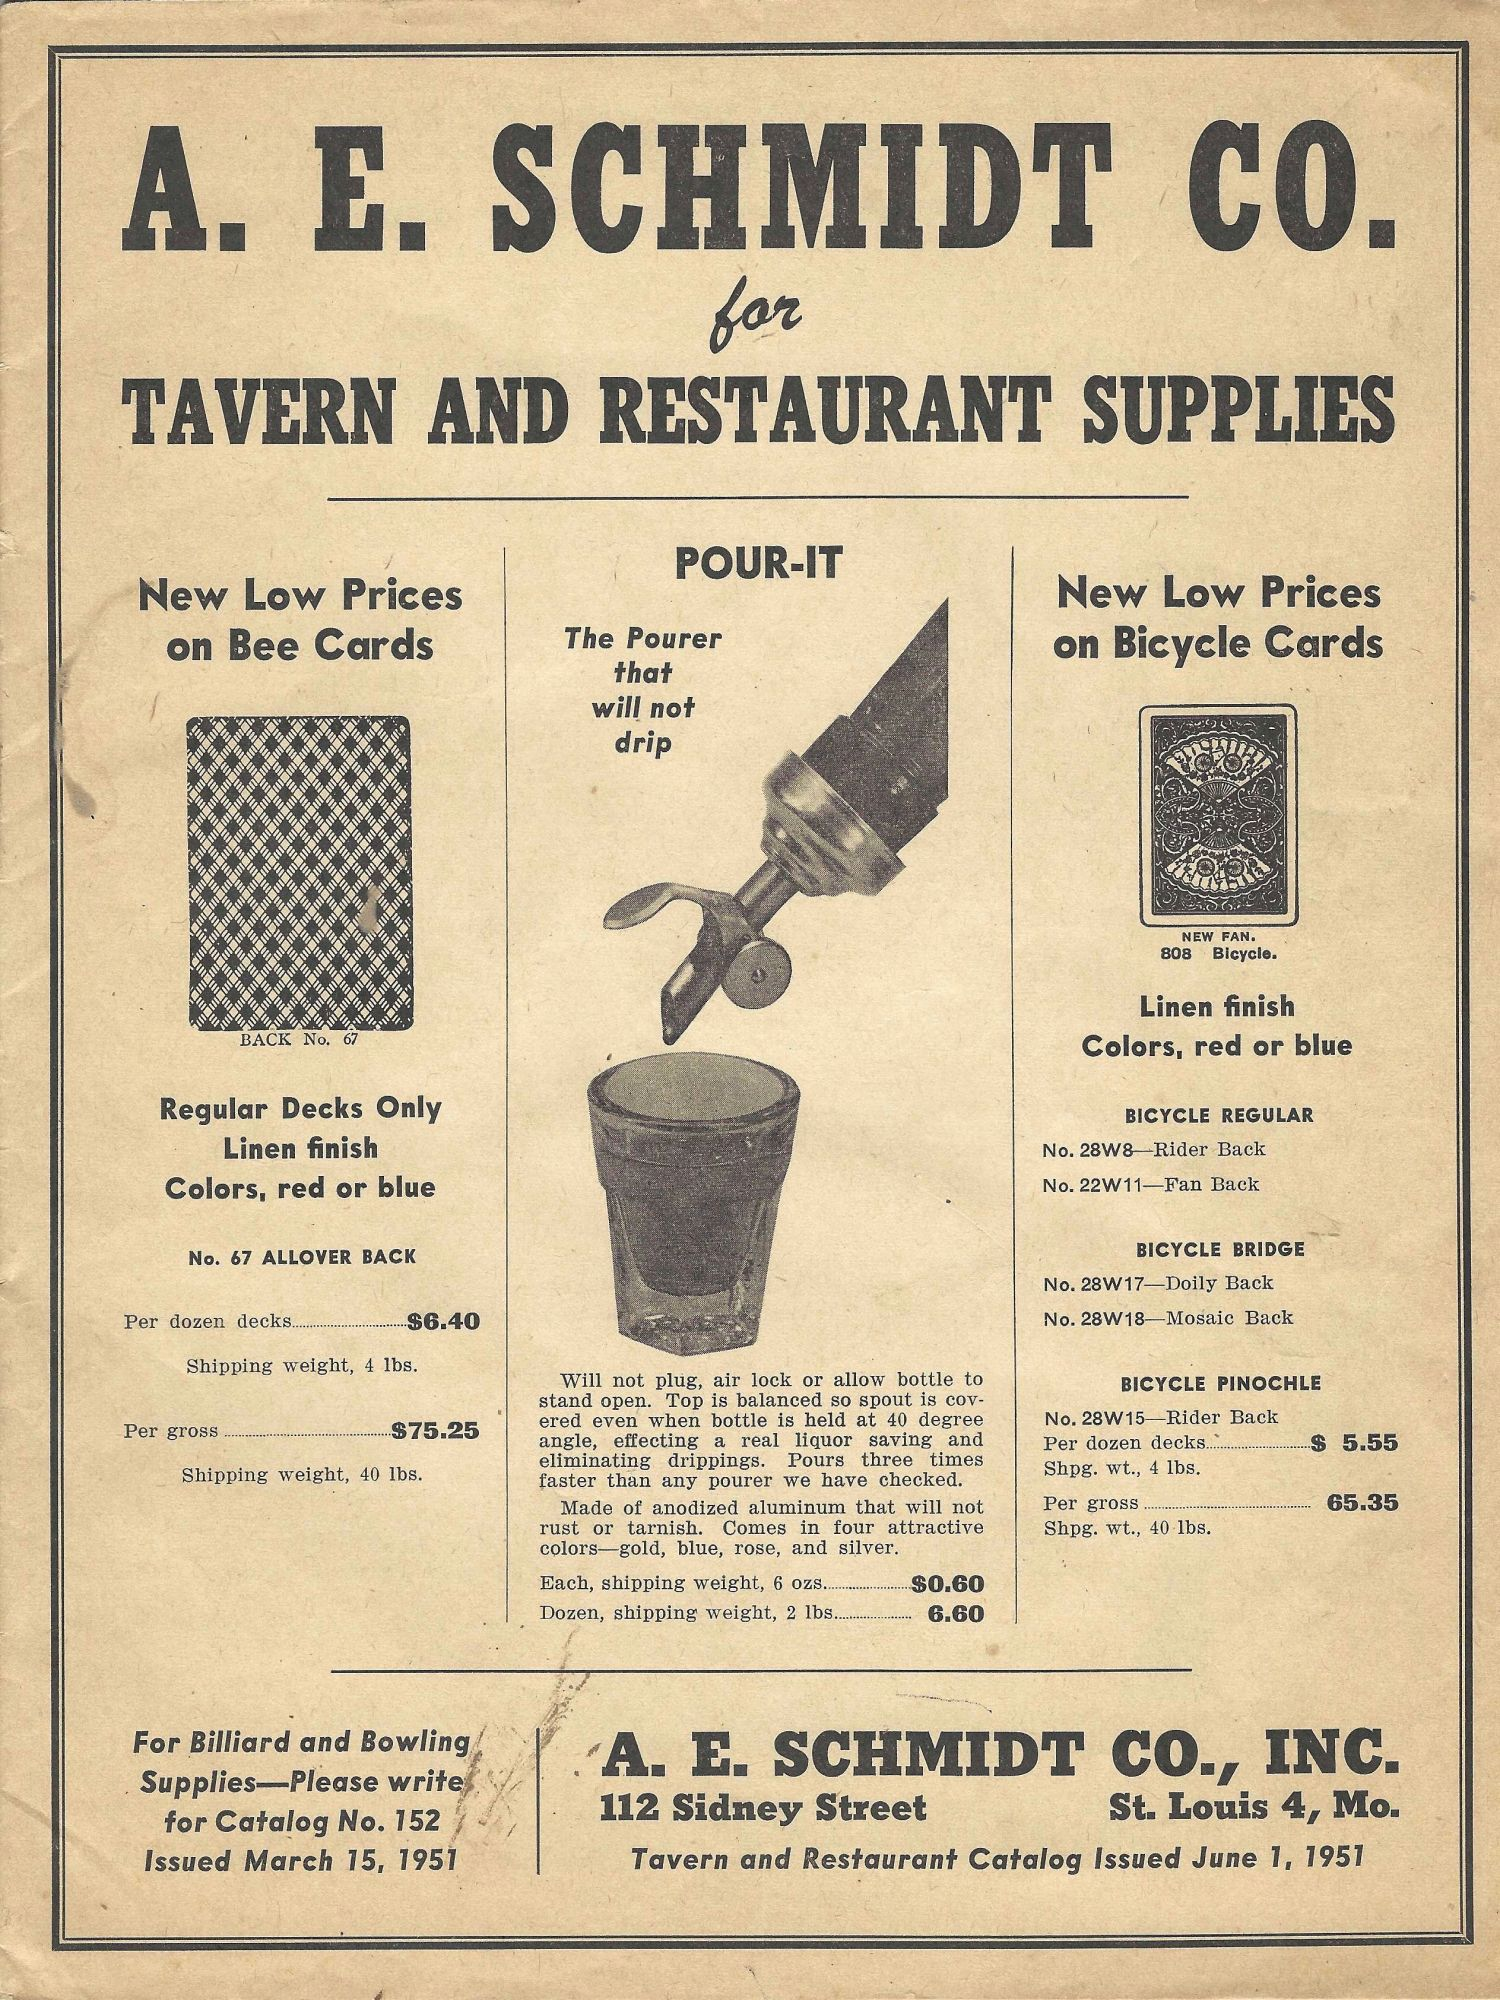 Tavern and Restaurant Cataloguing, Issued June 1, 1951. Trade catalogue – Bar equipment, Inc A E. Schmidt Co., Mo. St. Louis.